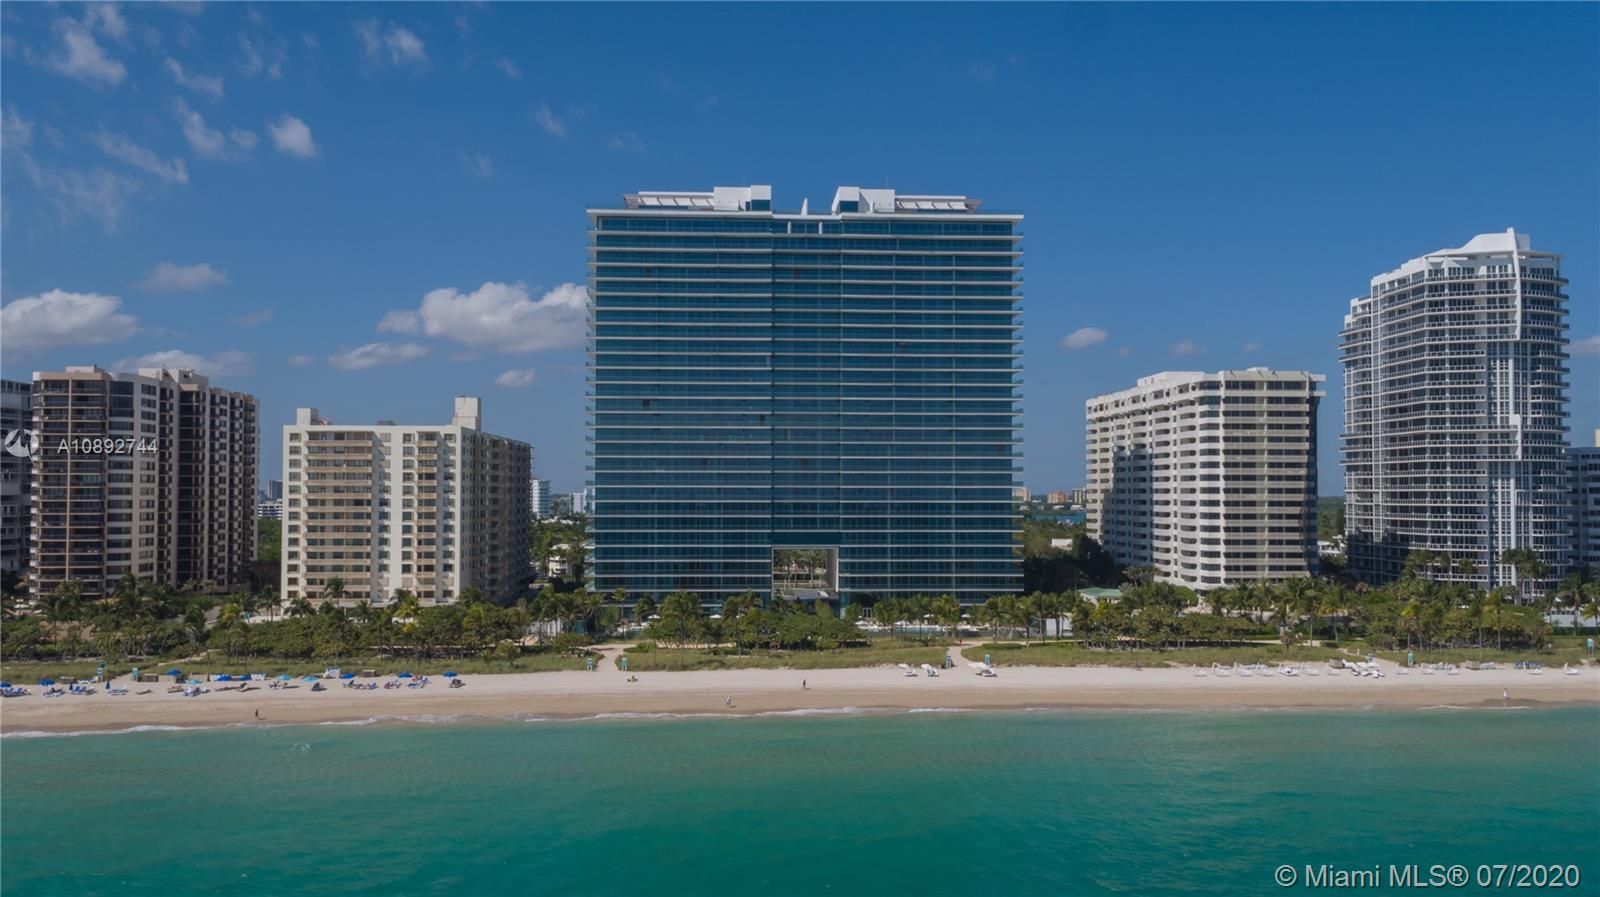 Oceana Bal Harbour - One of the most beautiful and elegant buildings in the Miami area with a very unique breathtaking art collection. Interiors designed by Piero Lissoni and landscape by Enzo Enea.  5-stars amenities with two concierges, spa, pet spa, restaurant, cinema, volleyball, two tennis court professional in clay, two pools, jacuzzis, beach service, pool service.  Amazing SE corner unit with 800SF balcony. This unit has  2 bedrooms + 2 full baths and a powder room. Very spacious kitchen with Calacata marble throughout. Gaggenau top of the line appliances. Finished unit with electrical blackouts and shades.